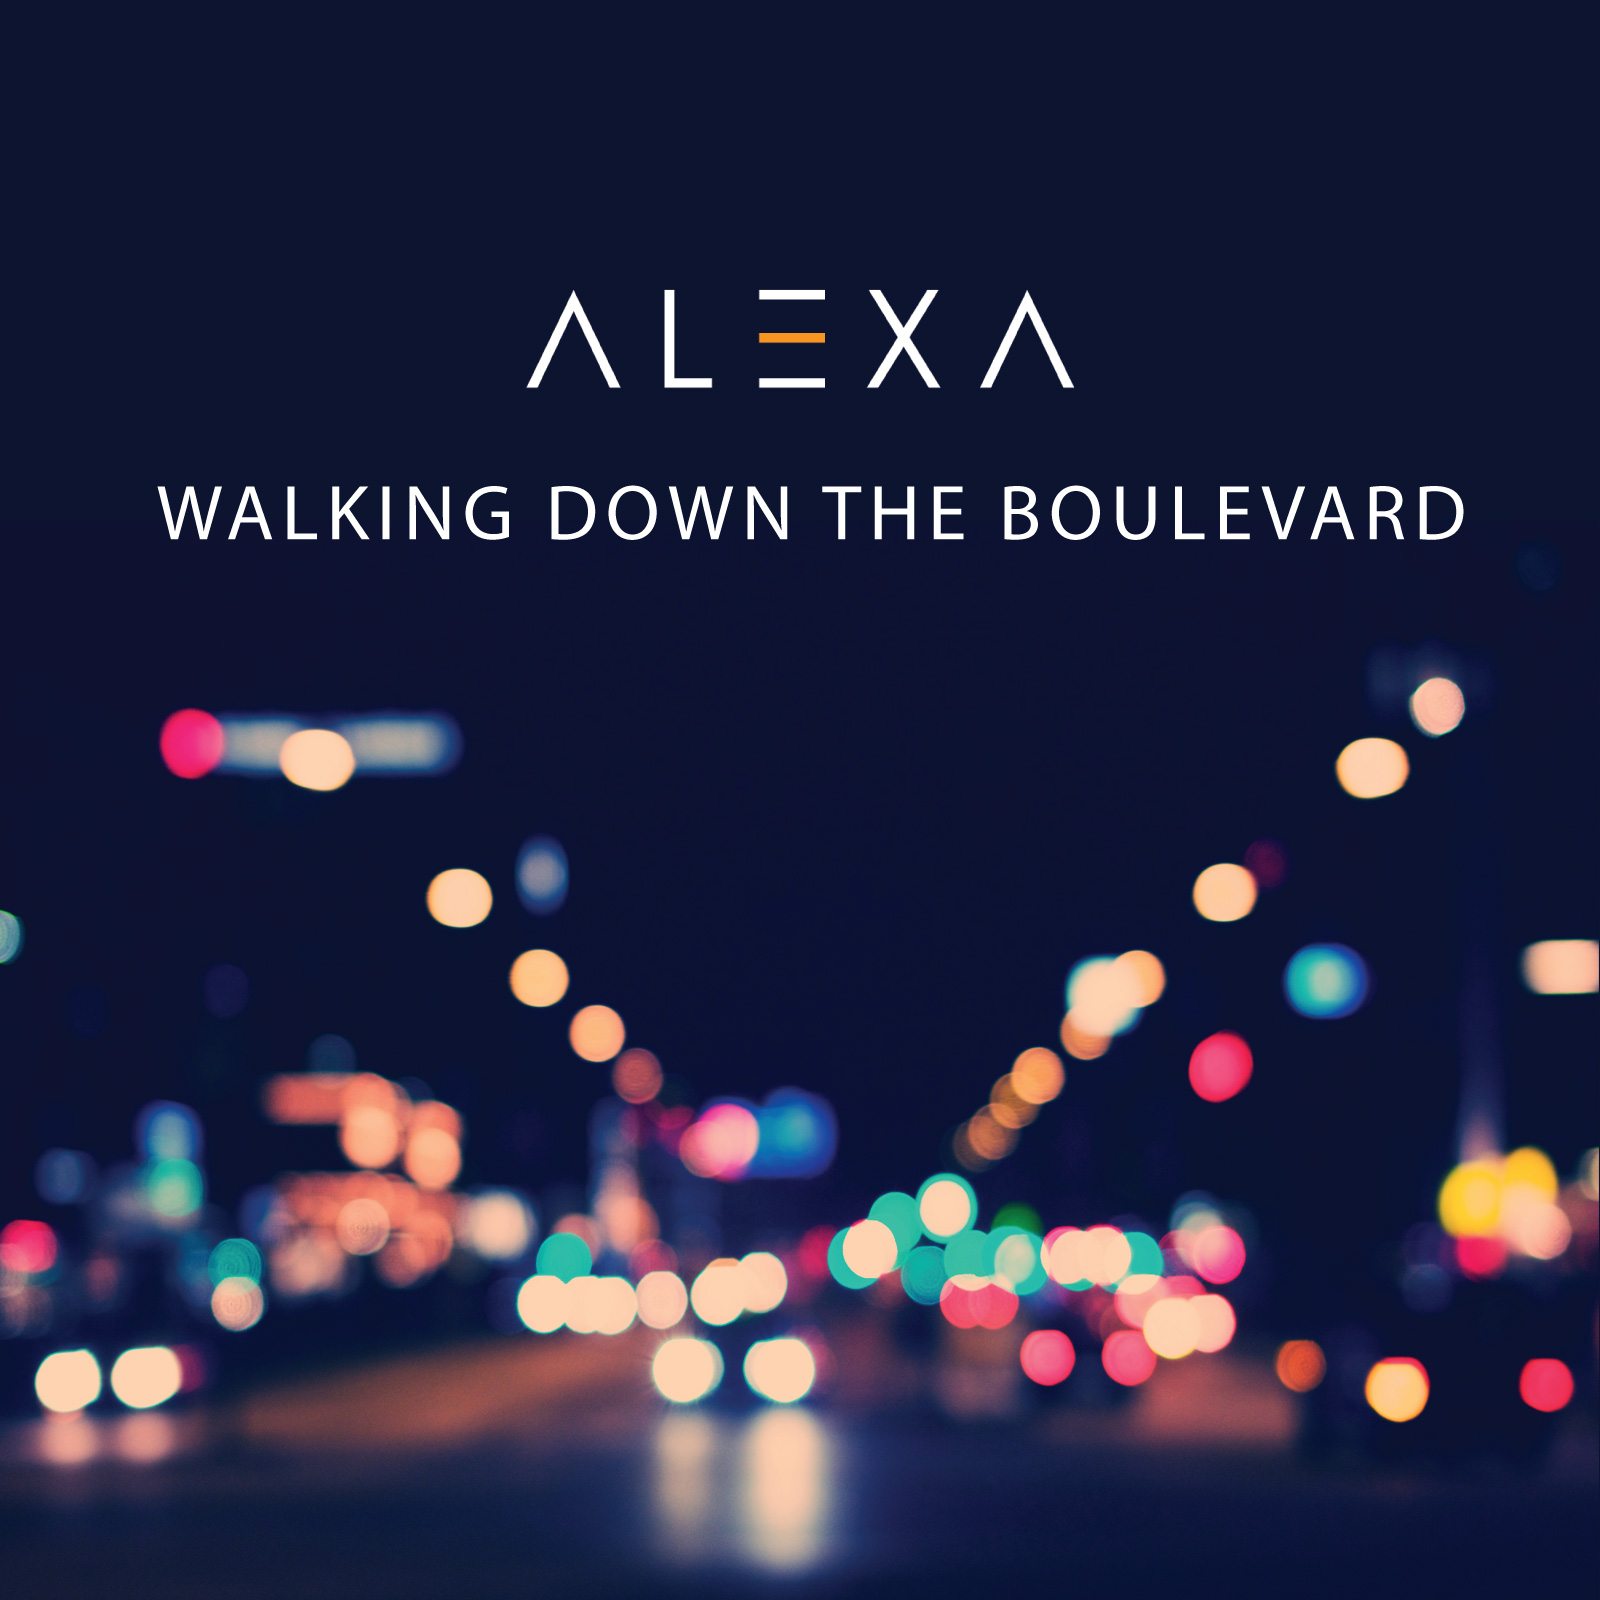 Walking-down-the-boulevard